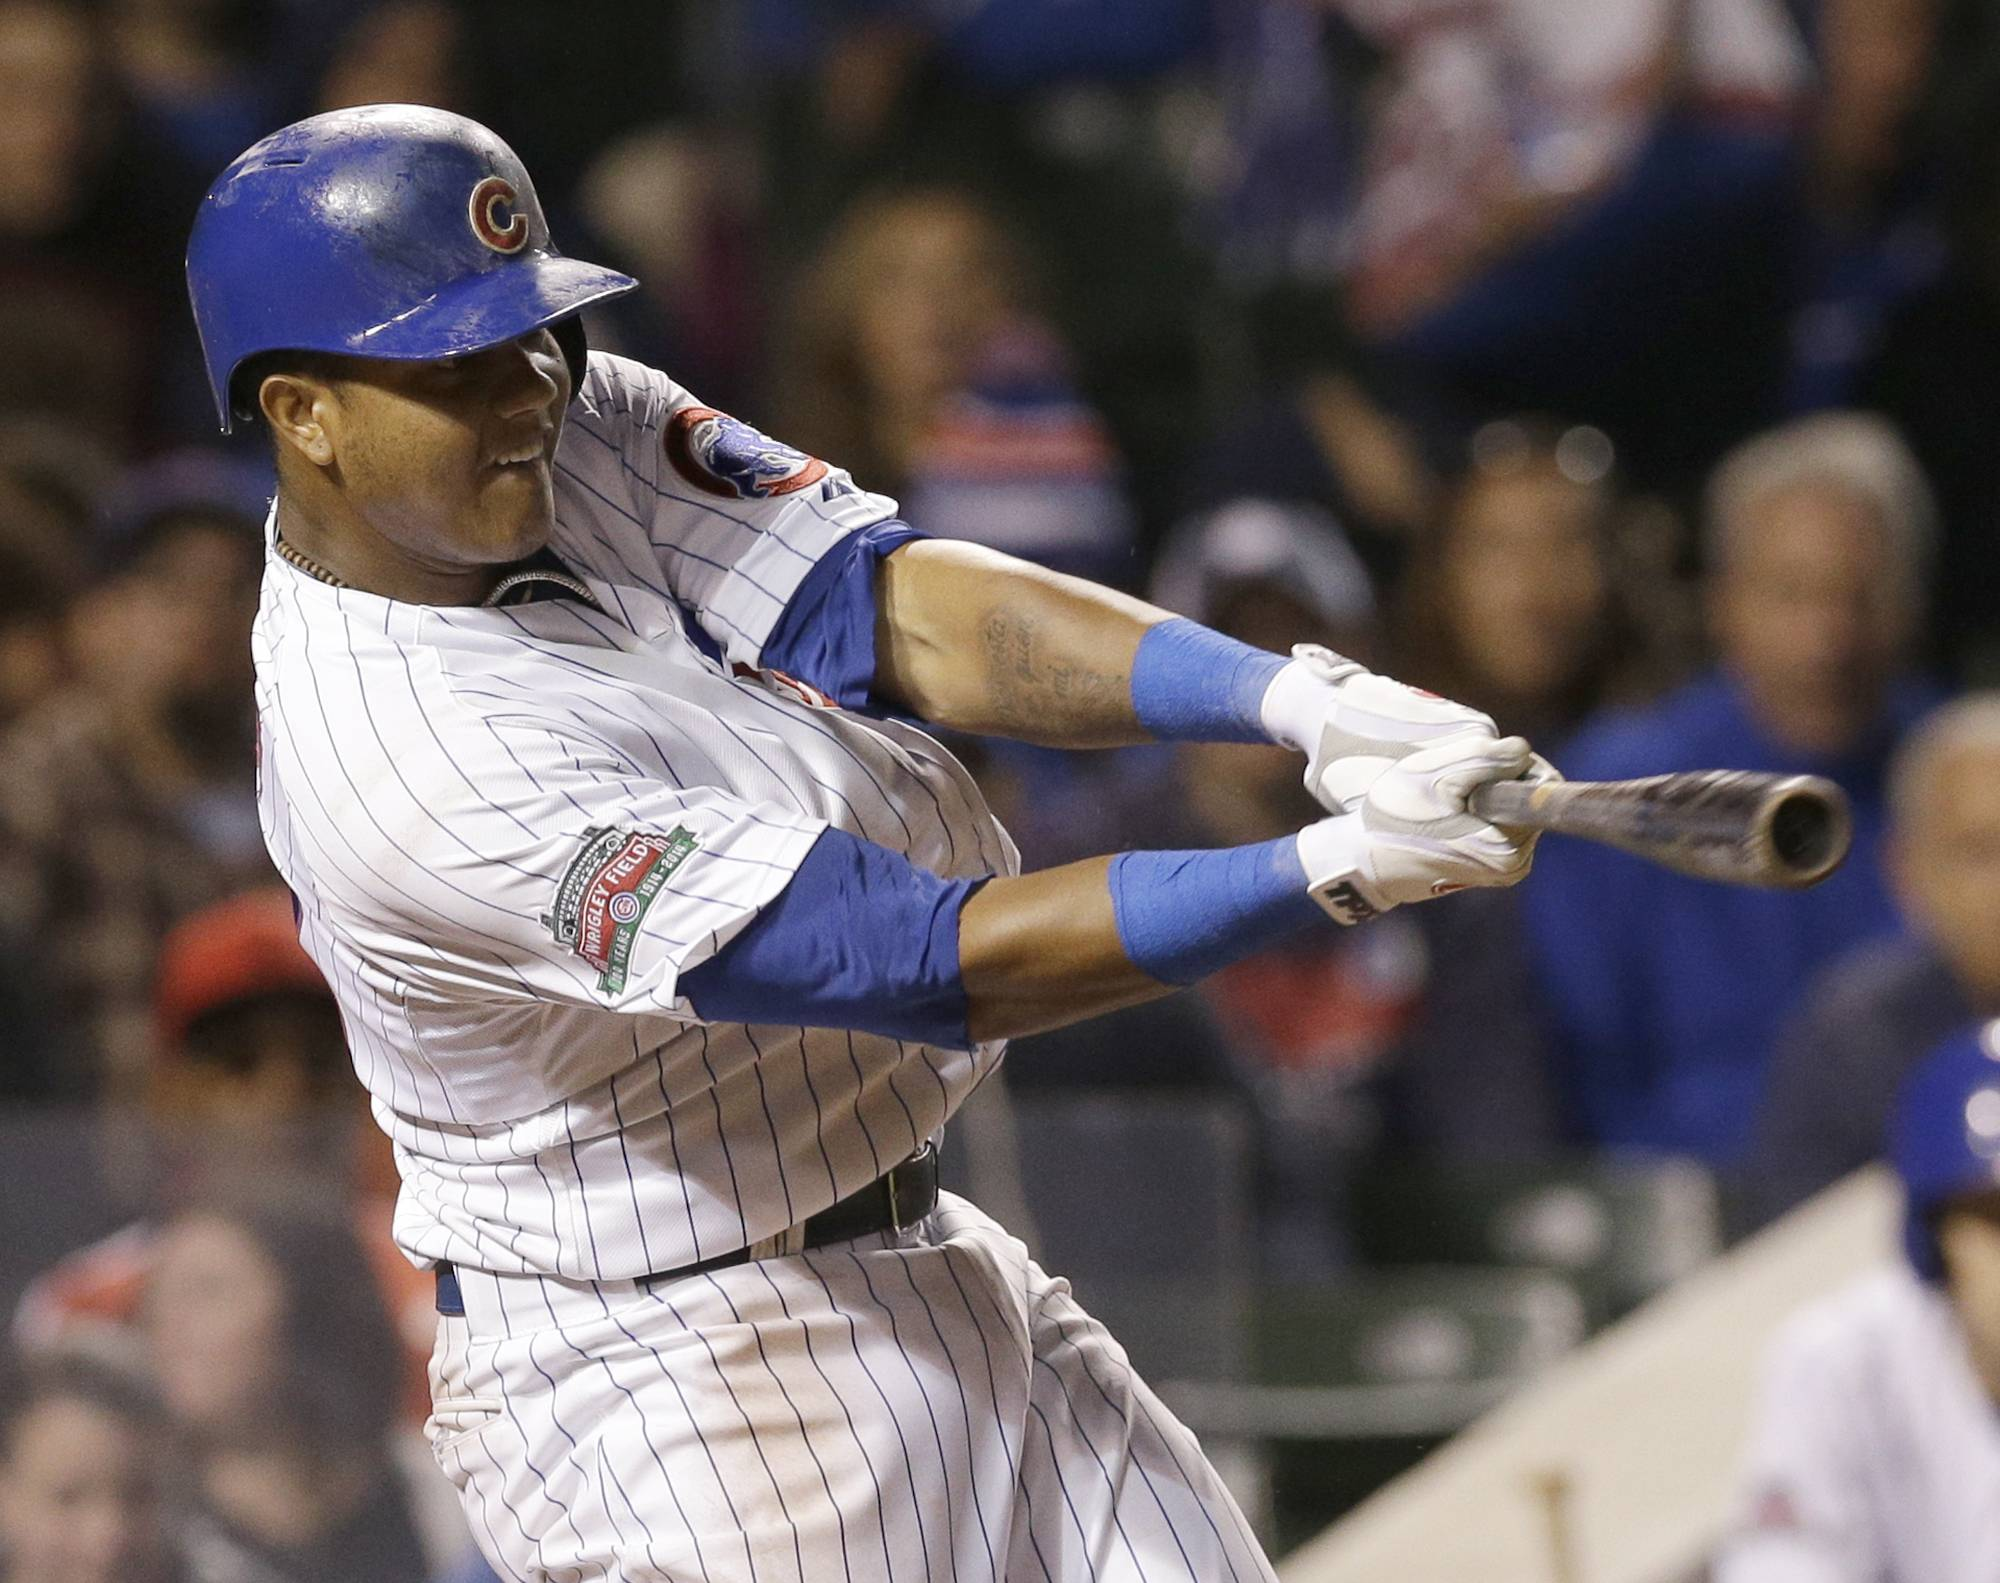 Chicago Cubs' Starlin Castro hits two-run single during the fifth inning of a baseball game against the New York Mets in Chicago, Wednesday, June 4, 2014. (AP Photo/Nam Y. Huh)